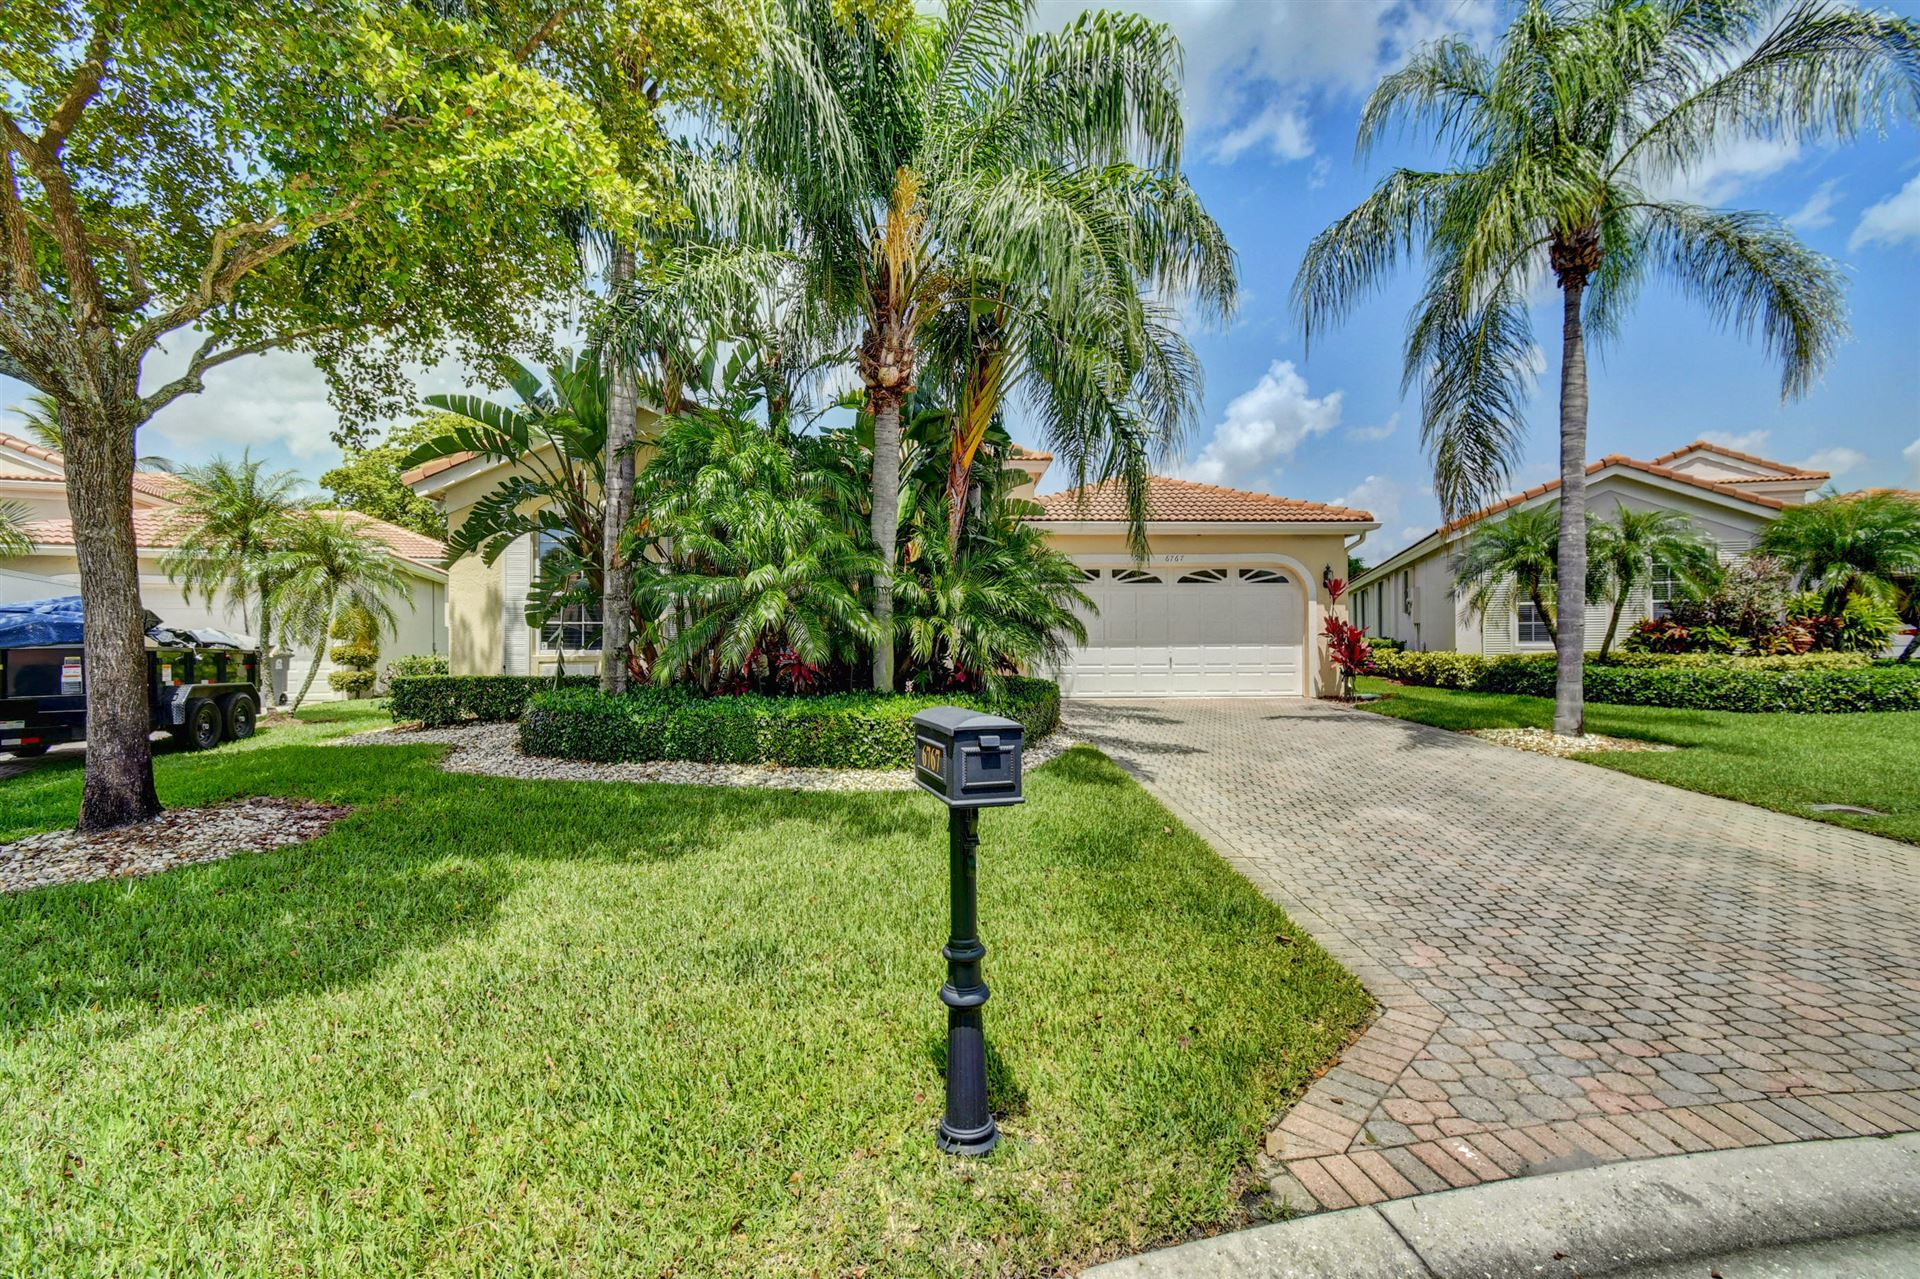 Photo of 6767 Portside Drive, Boca Raton, FL 33496 (MLS # RX-10635747)